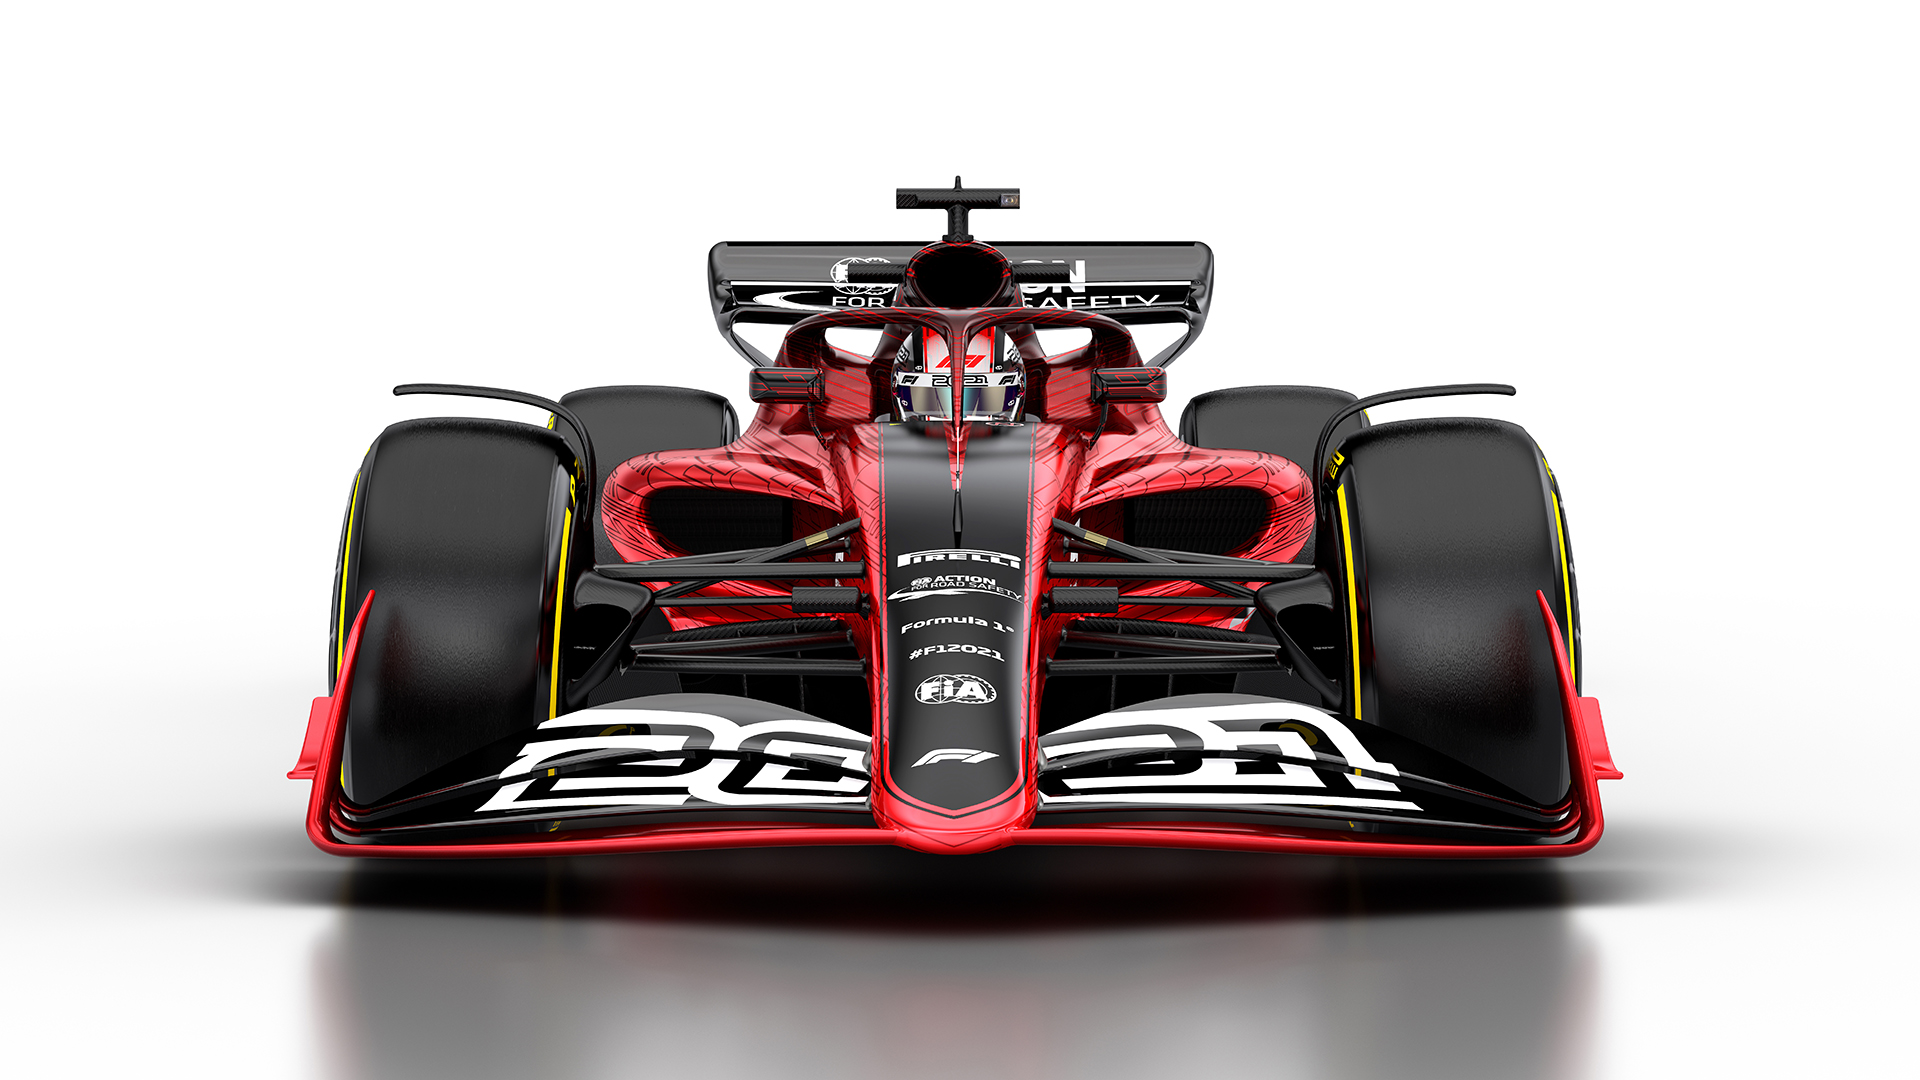 F1%202021%20LAUNCH%20RENDERING%20(1).jpg